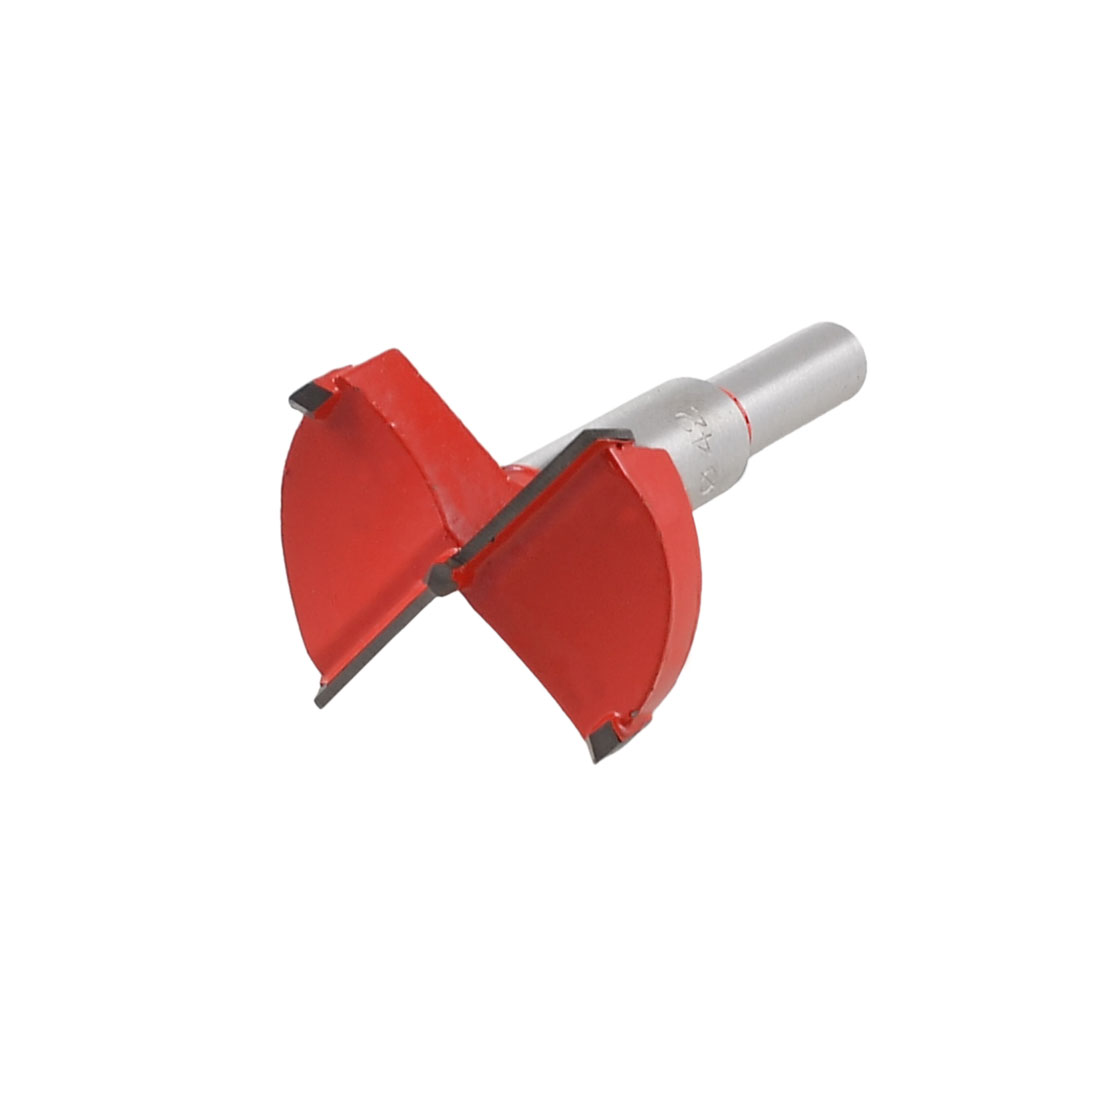 Carbide Tip 42mm Dia Boring Bit Woodworking Drill Tool Red Silver Tone